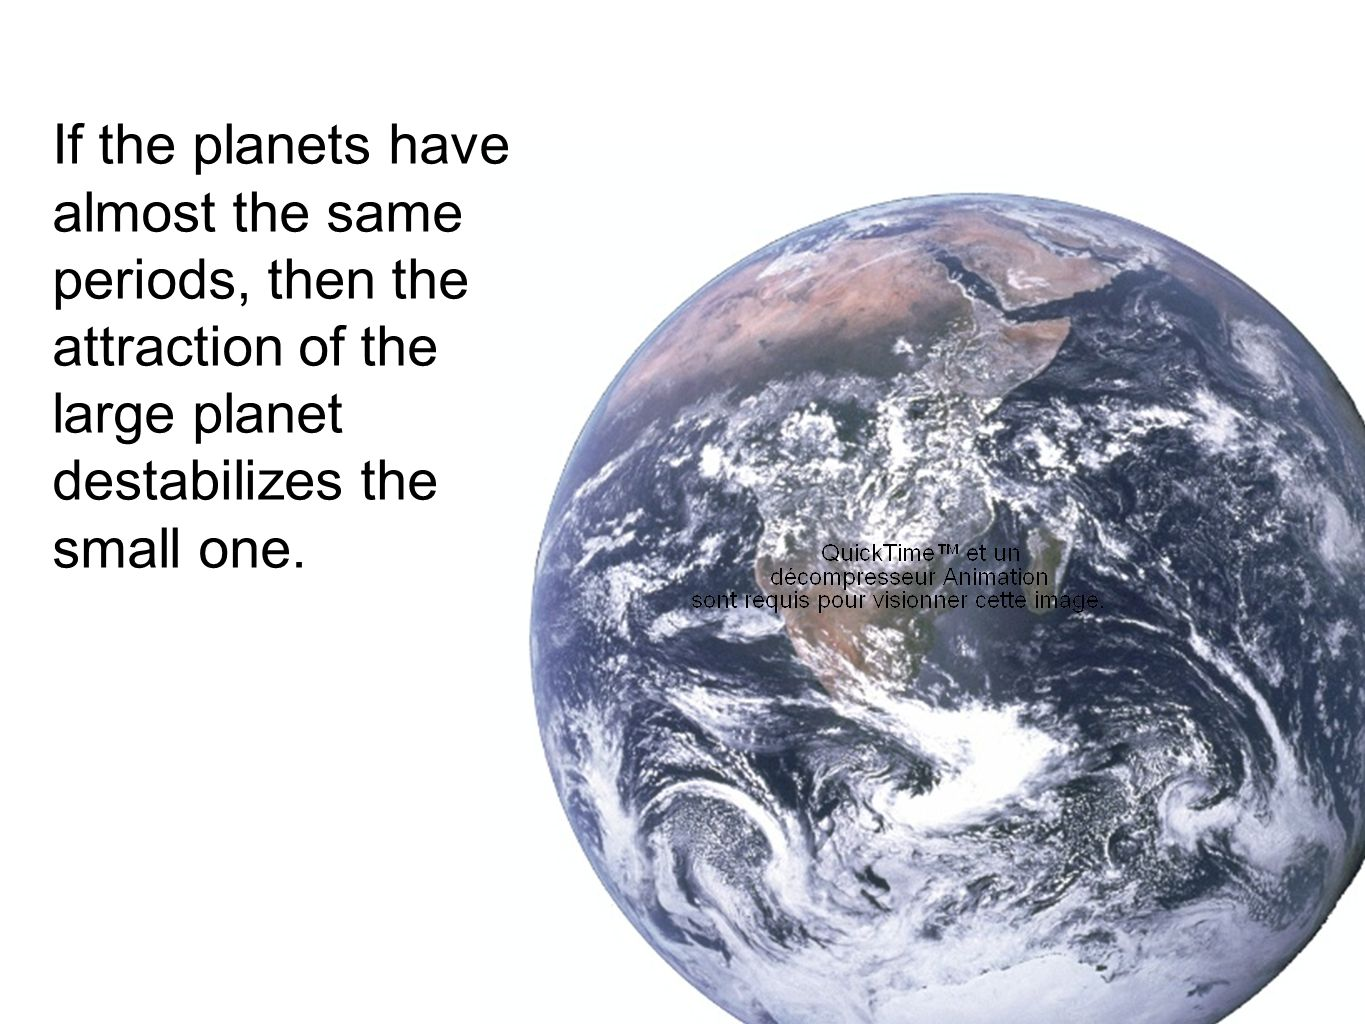 If the planets have almost the same periods, then the attraction of the large planet destabilizes the small one.